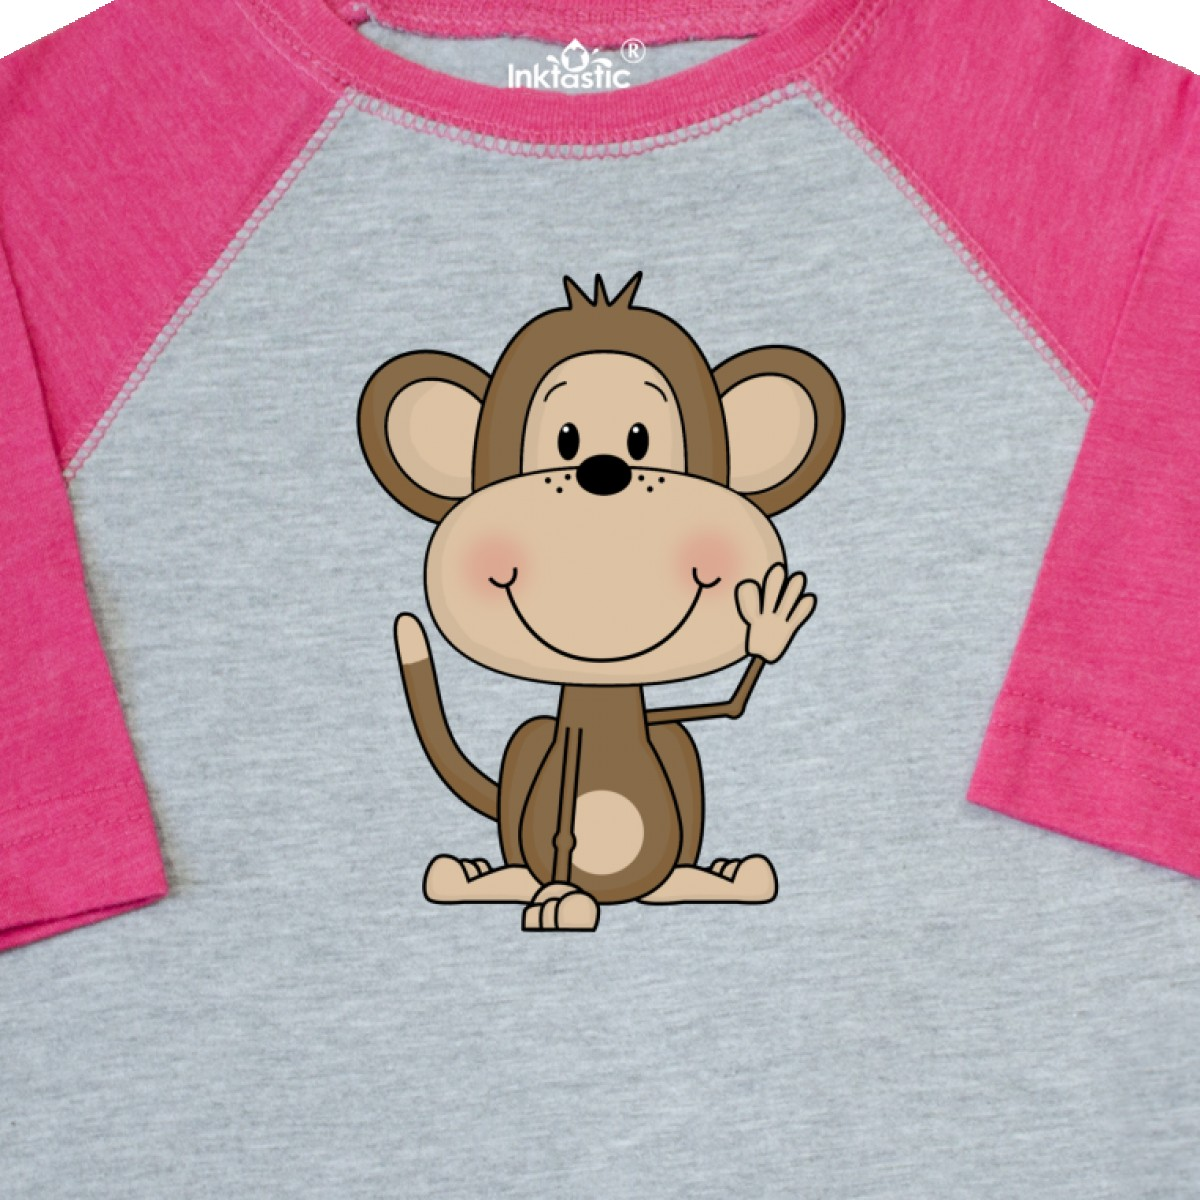 Inktastic-Monkey-Toddler-T-Shirt-Cute-Baby-Monkeys-Bananas-Giraffe-Acrobats-Of thumbnail 6